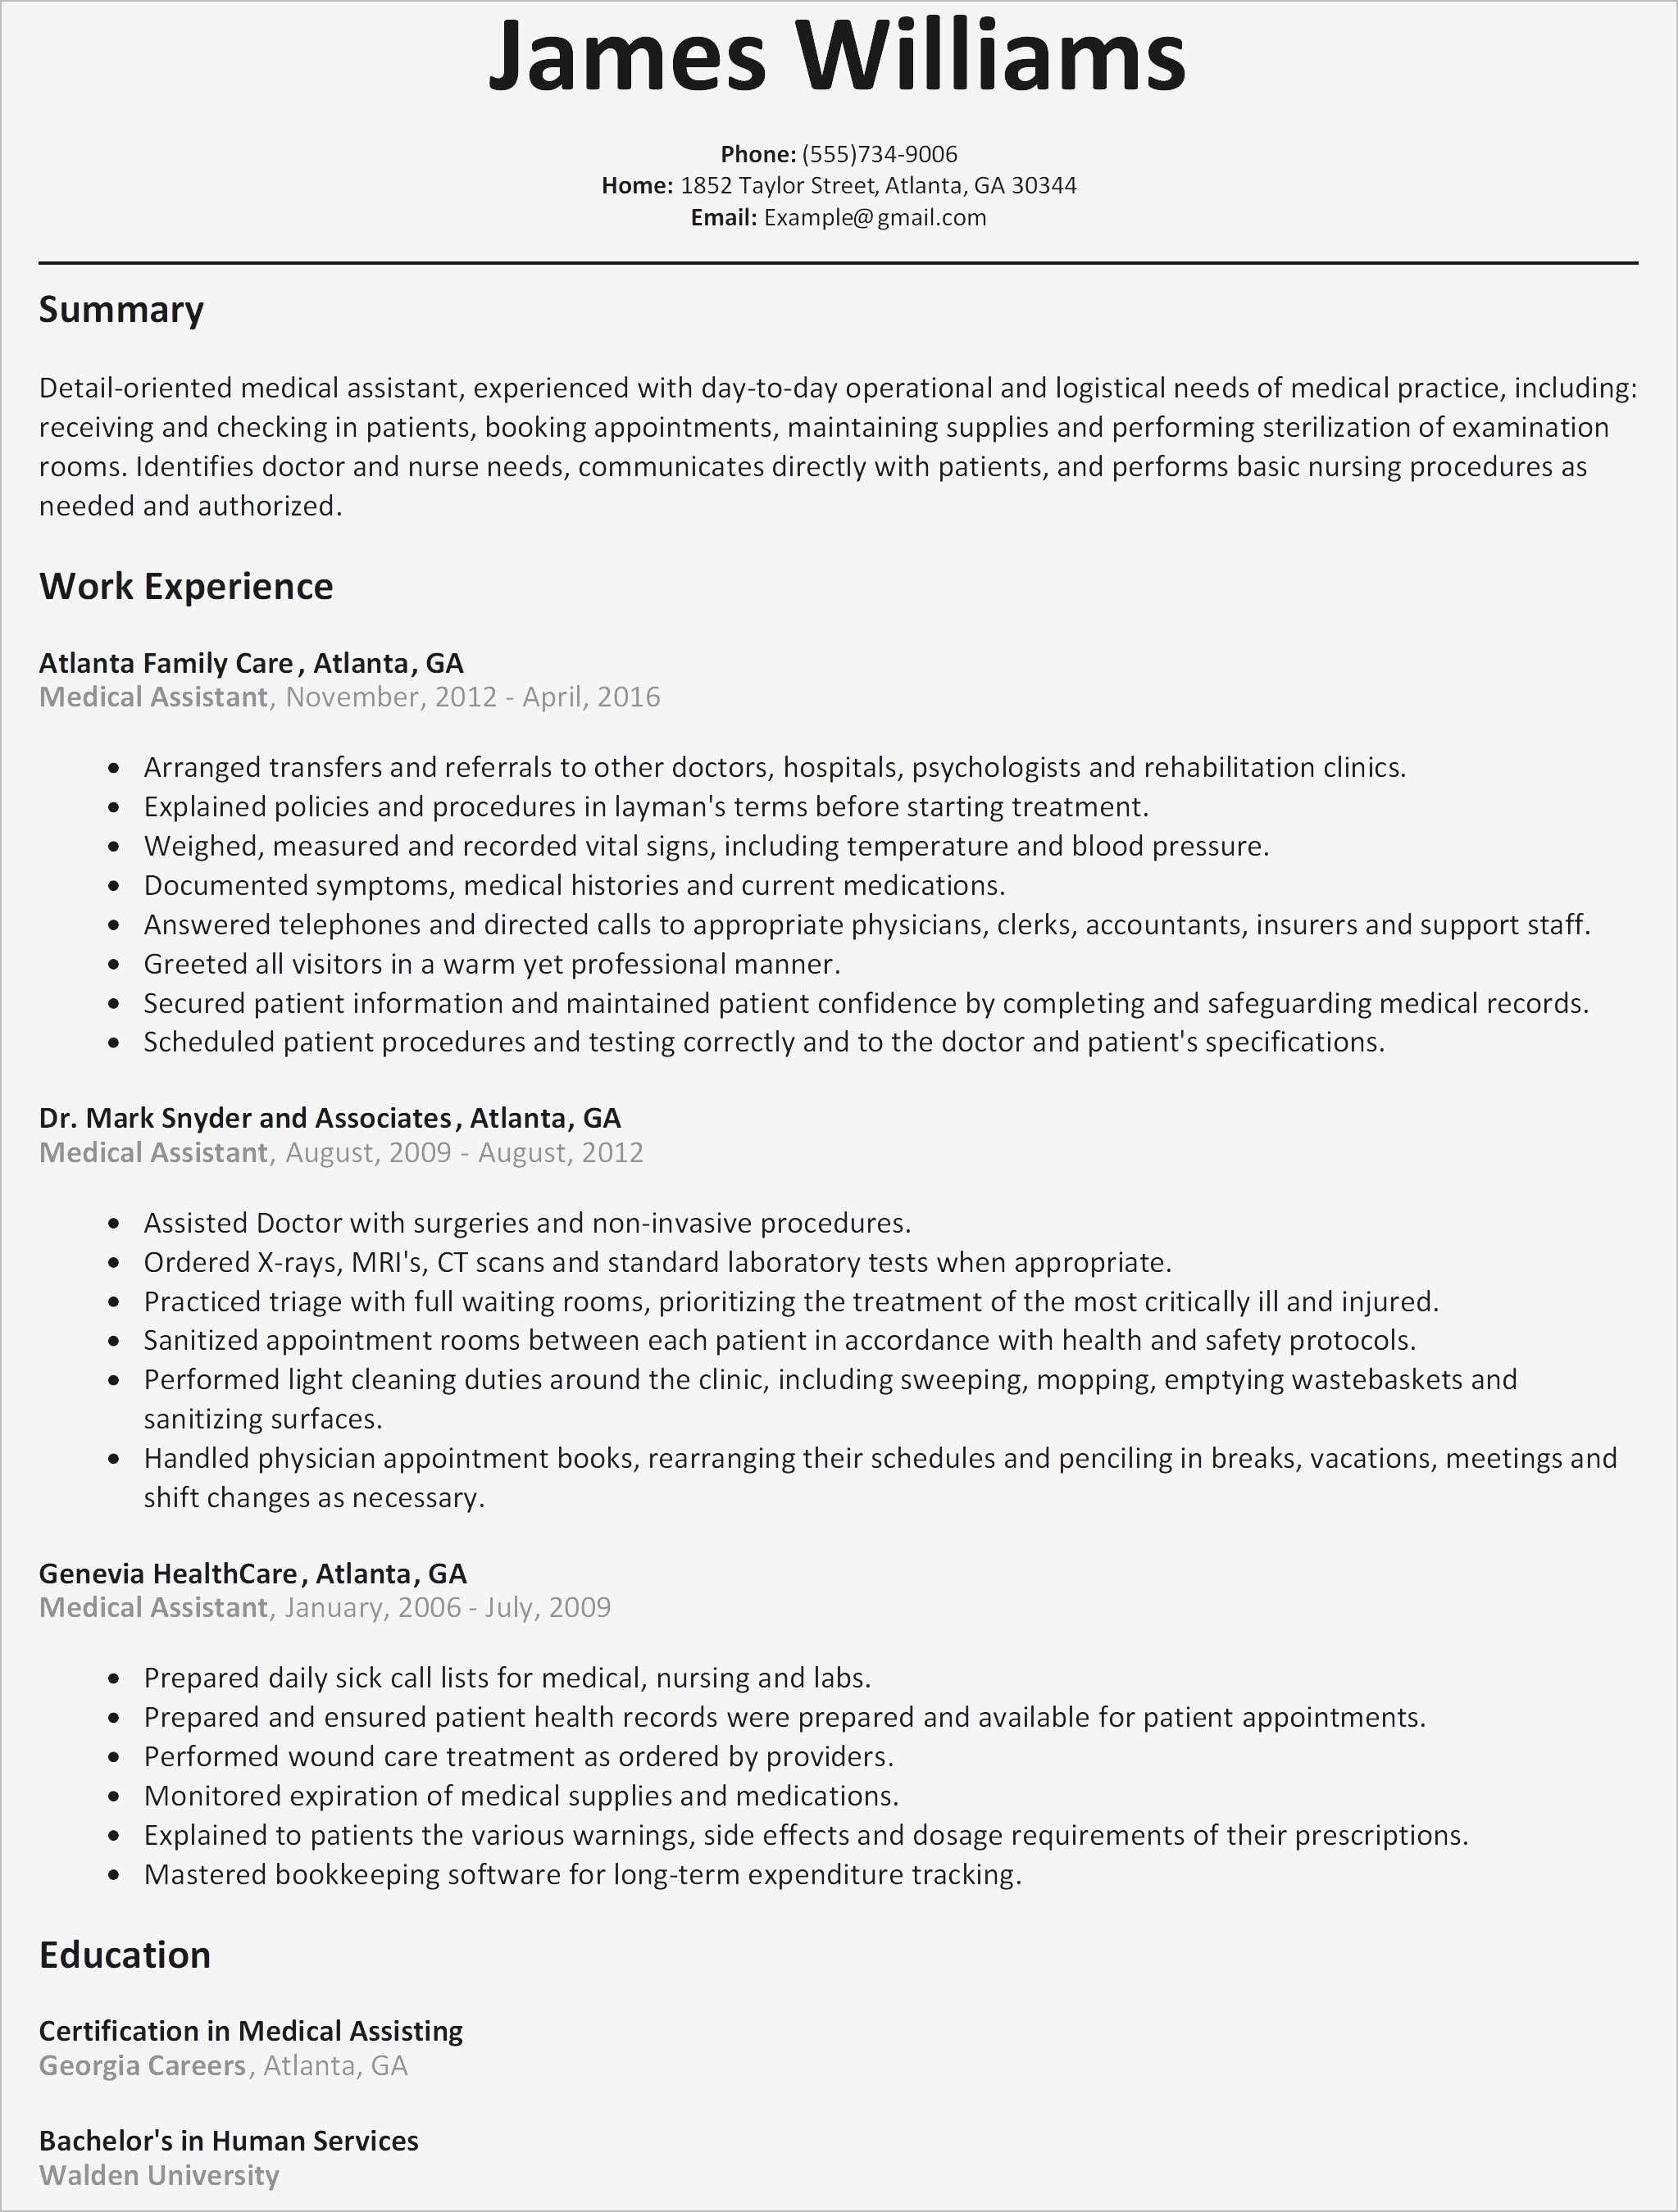 Manager Cover Letter Template - Cover Letter Tips Experience Levelmanager3 Mon Mistakes On